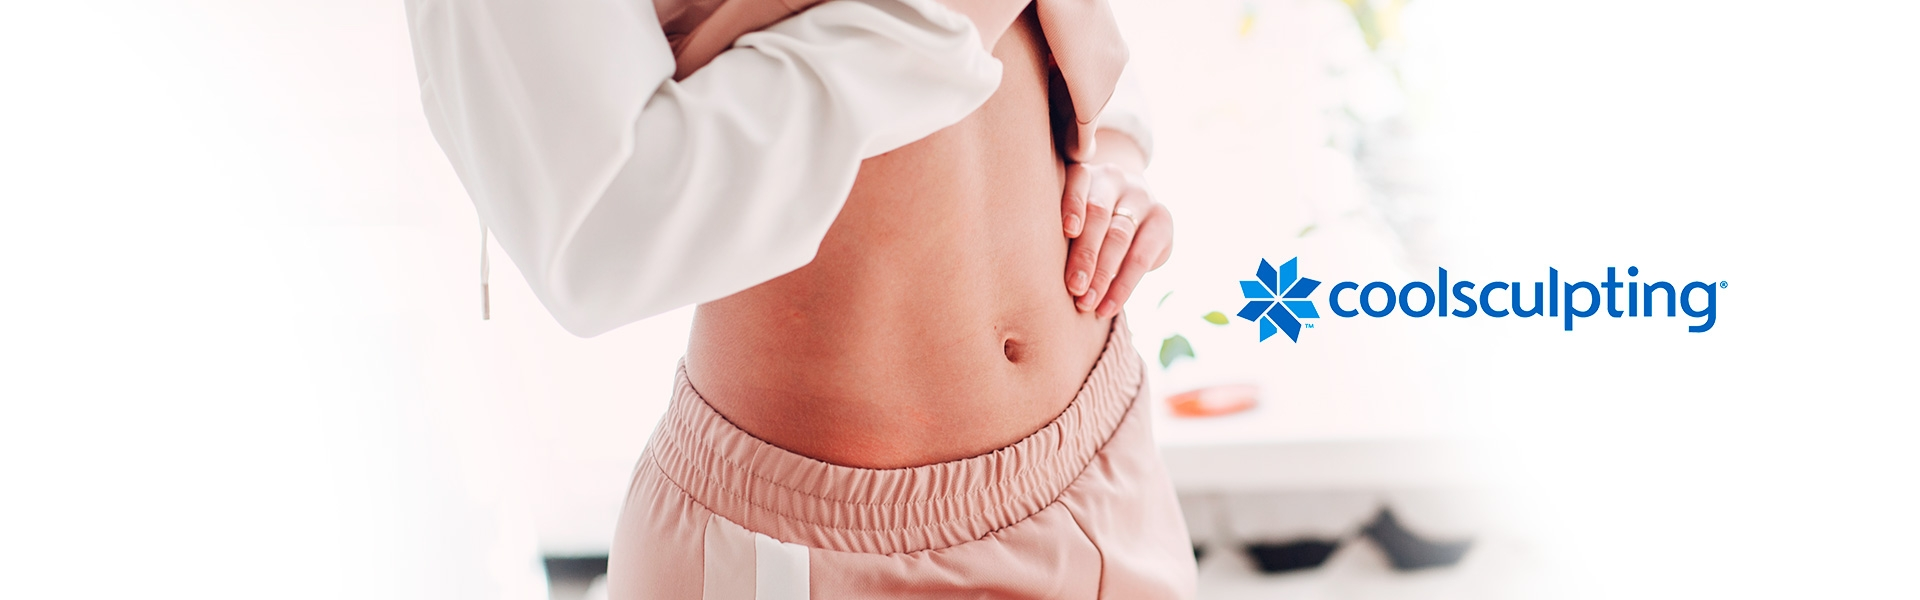 Clínica Arruabarrena  Coolsculpting para reducir grasa